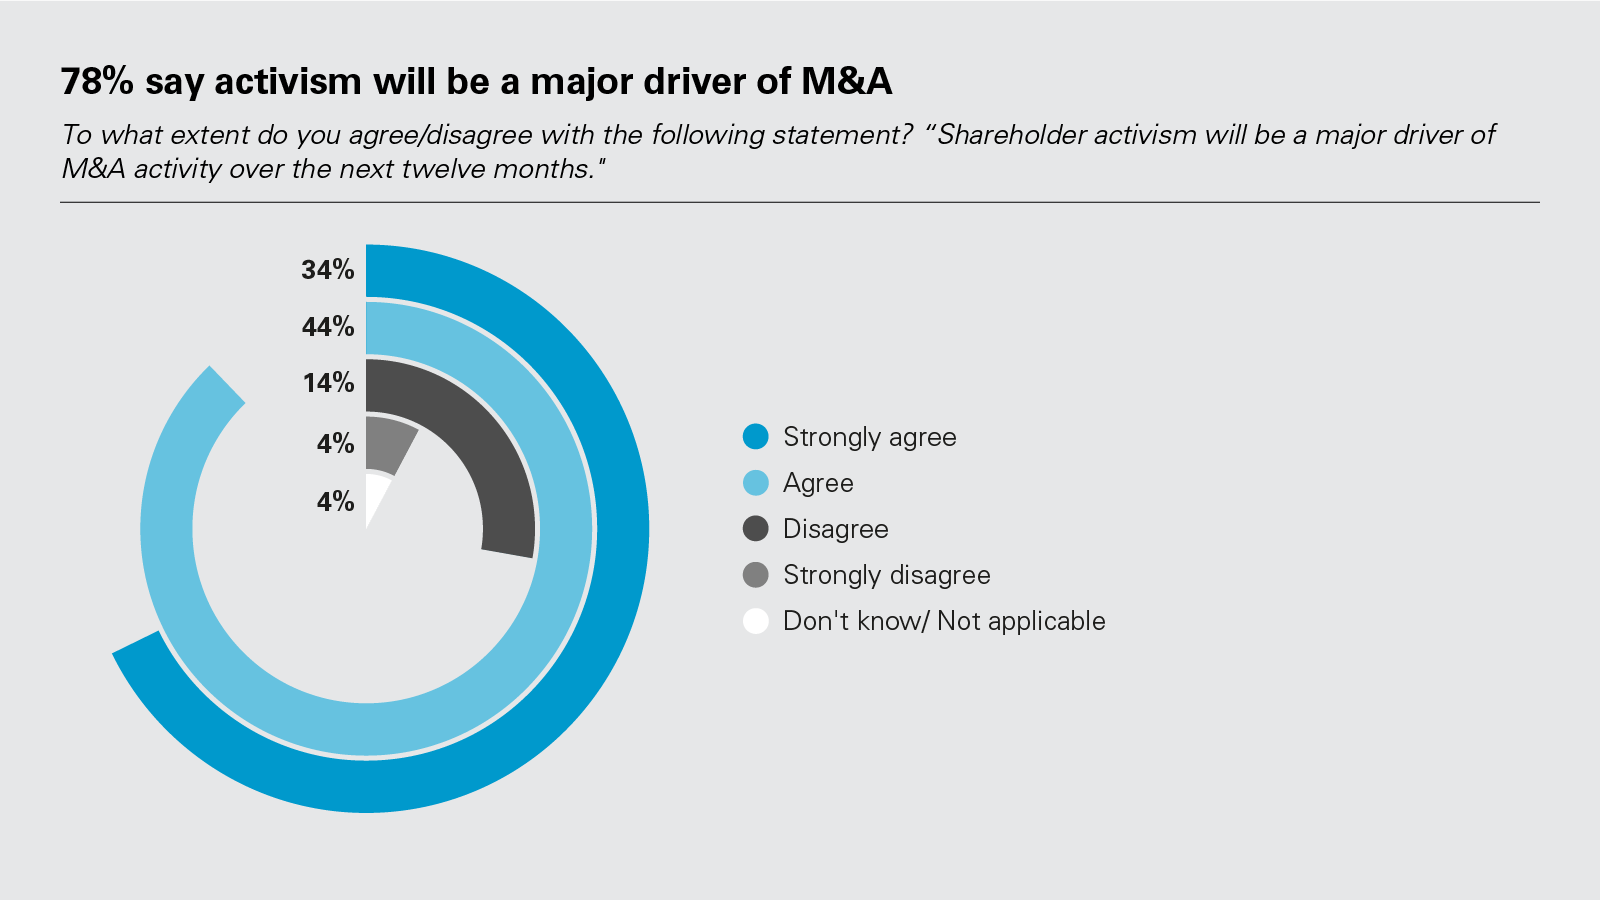 78% say activism will be a major driver of M&A